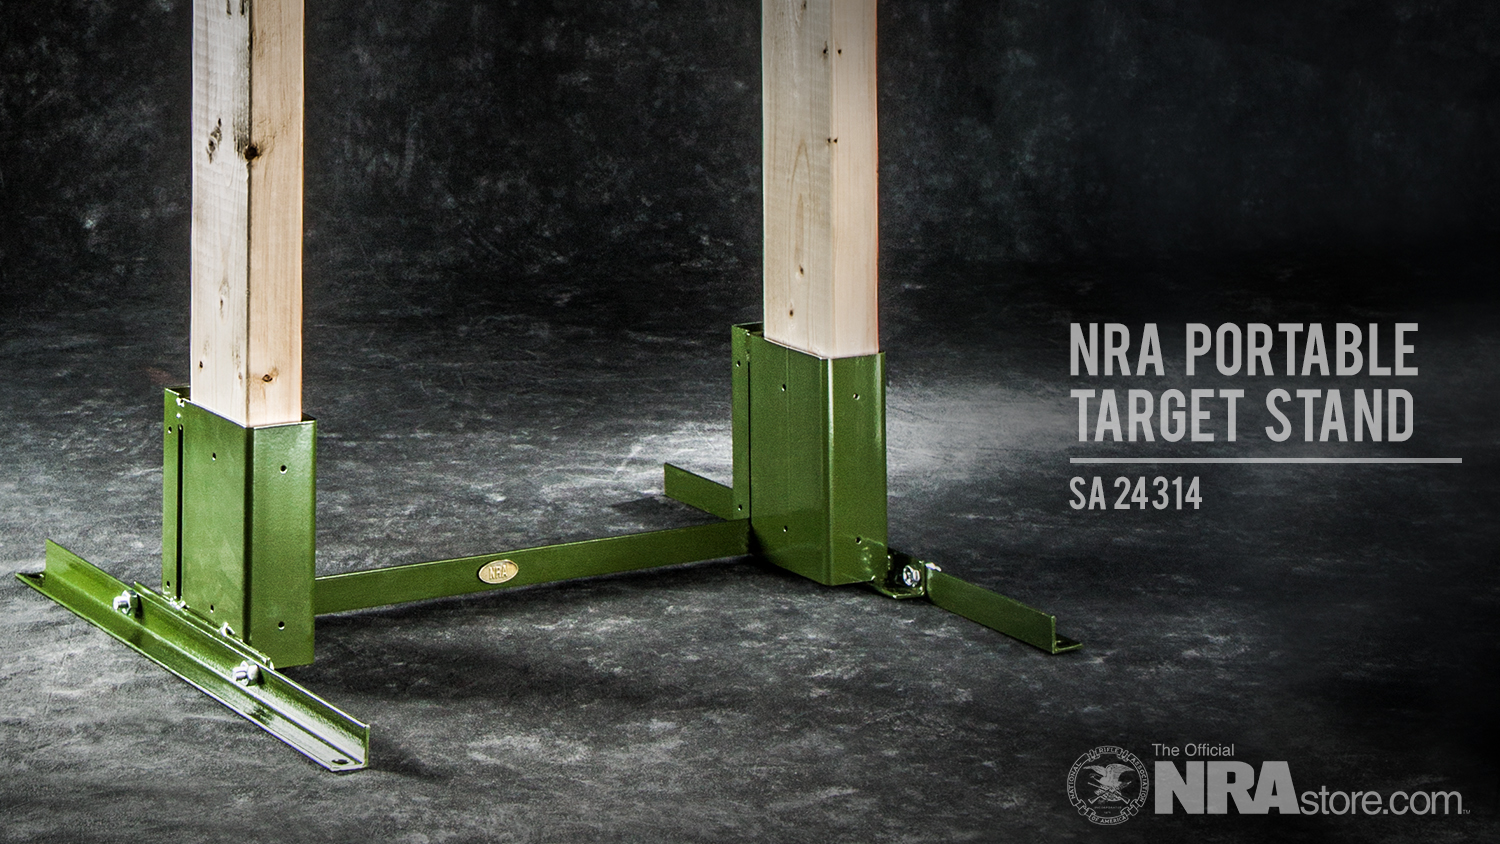 NRAstore Product Highlight: Portable Target Stand